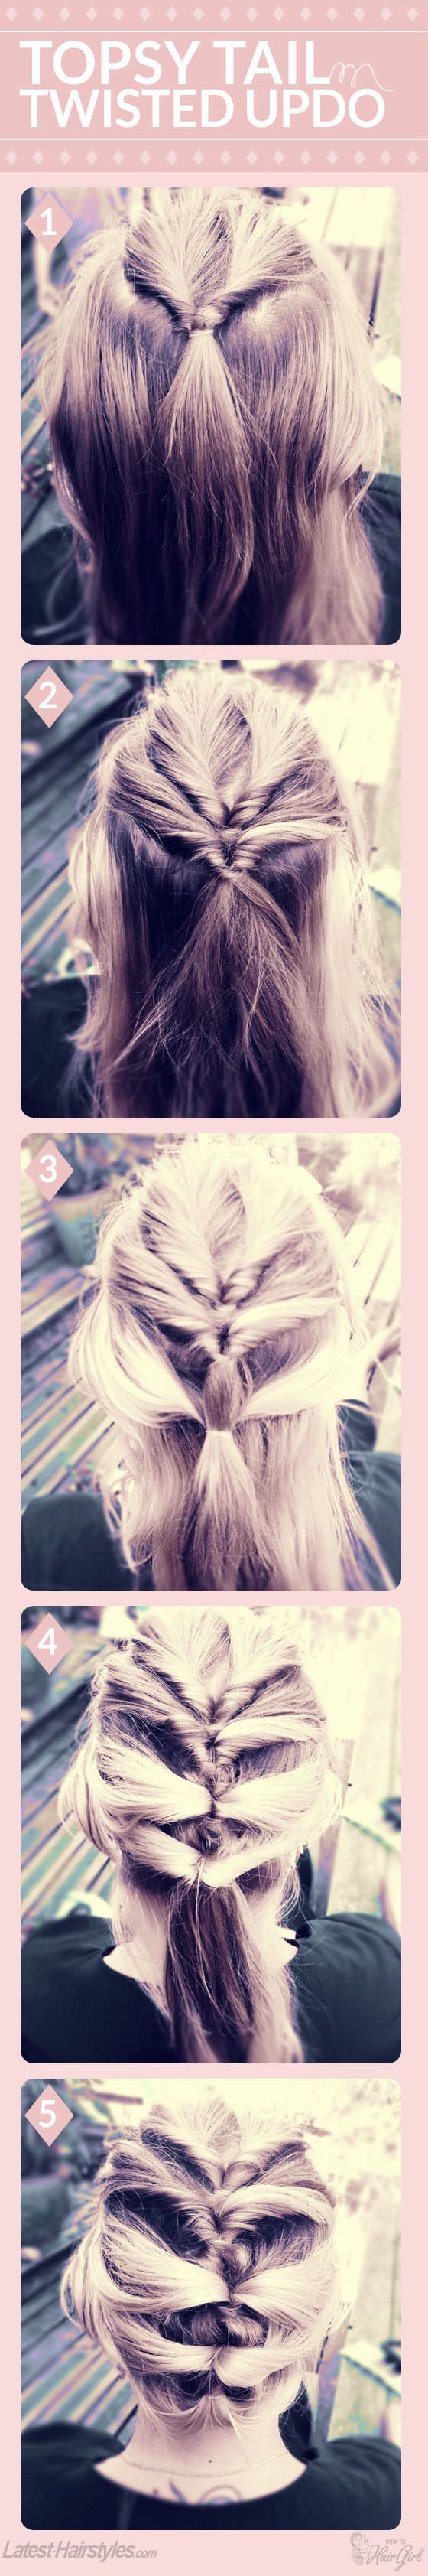 DIY - Topsy Tail Twisted Updo <3